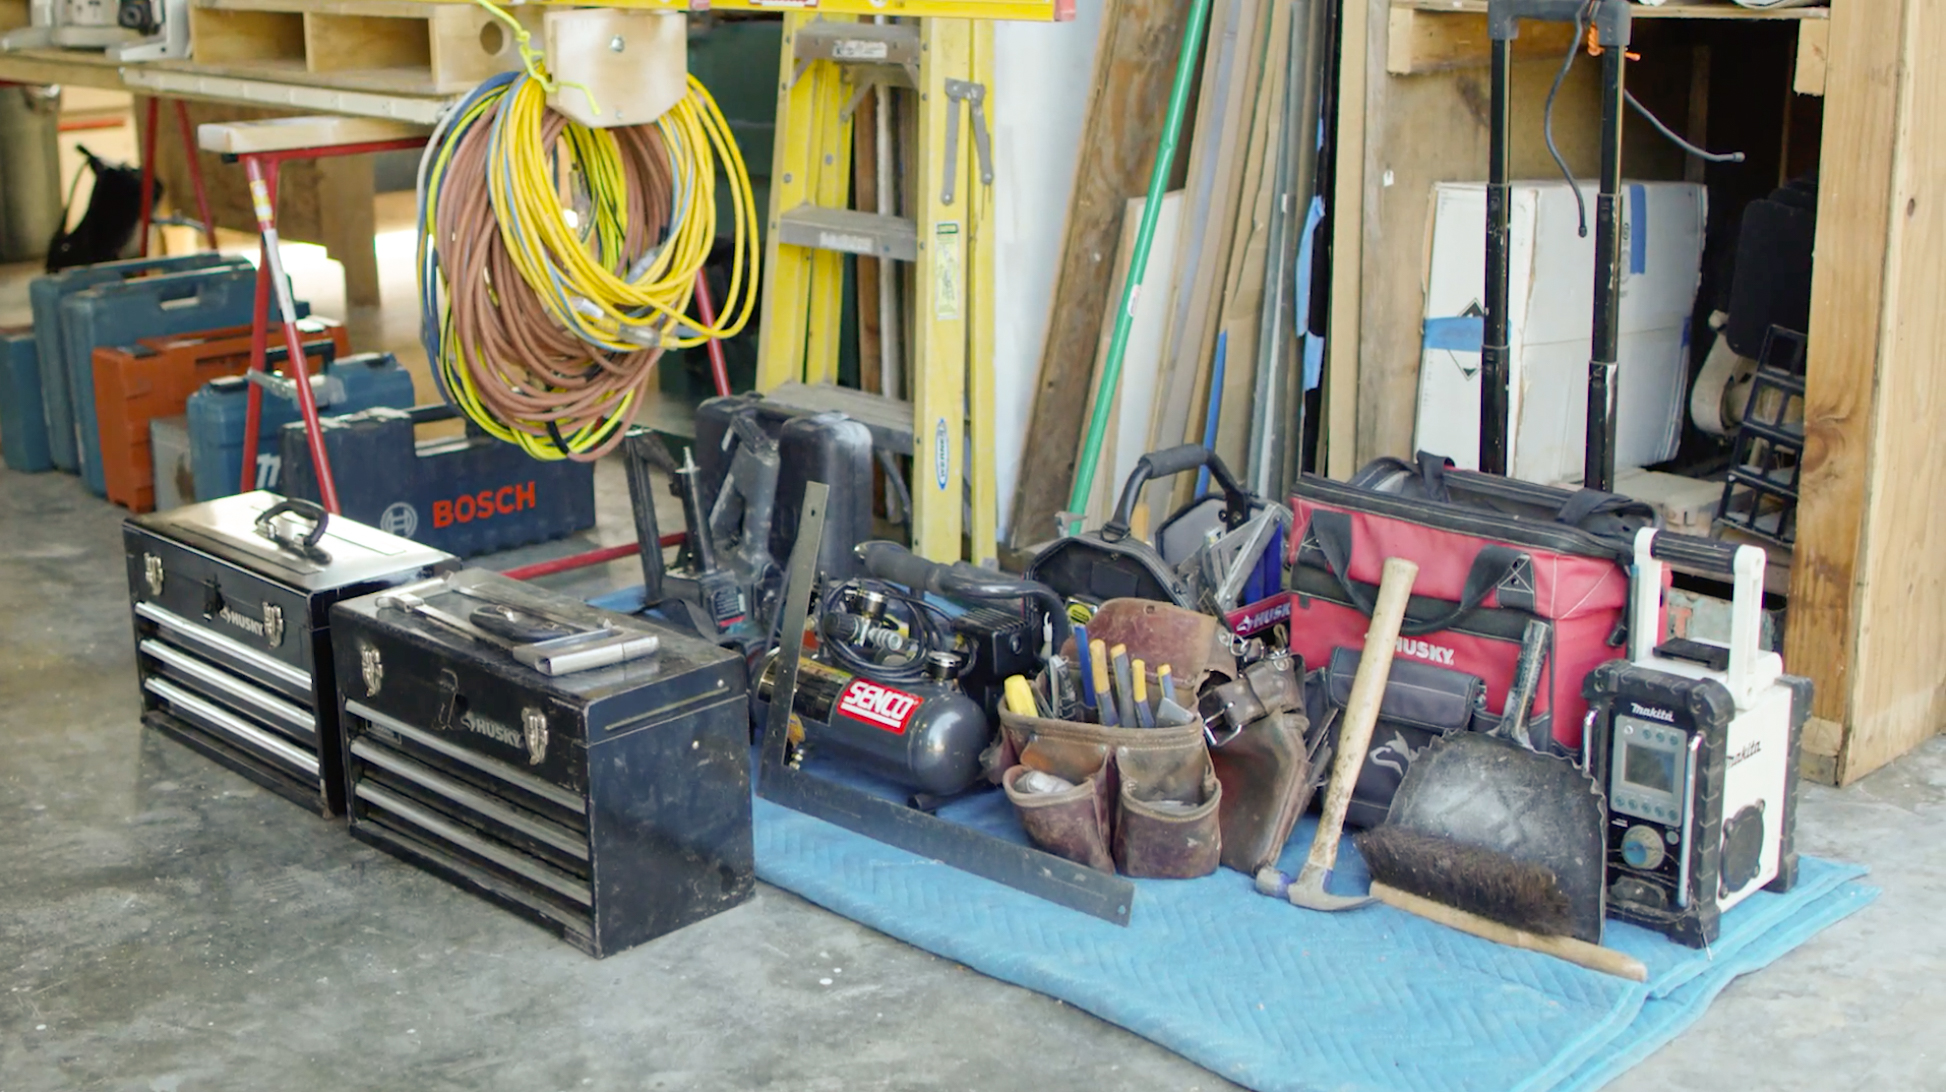 lay out all your tools